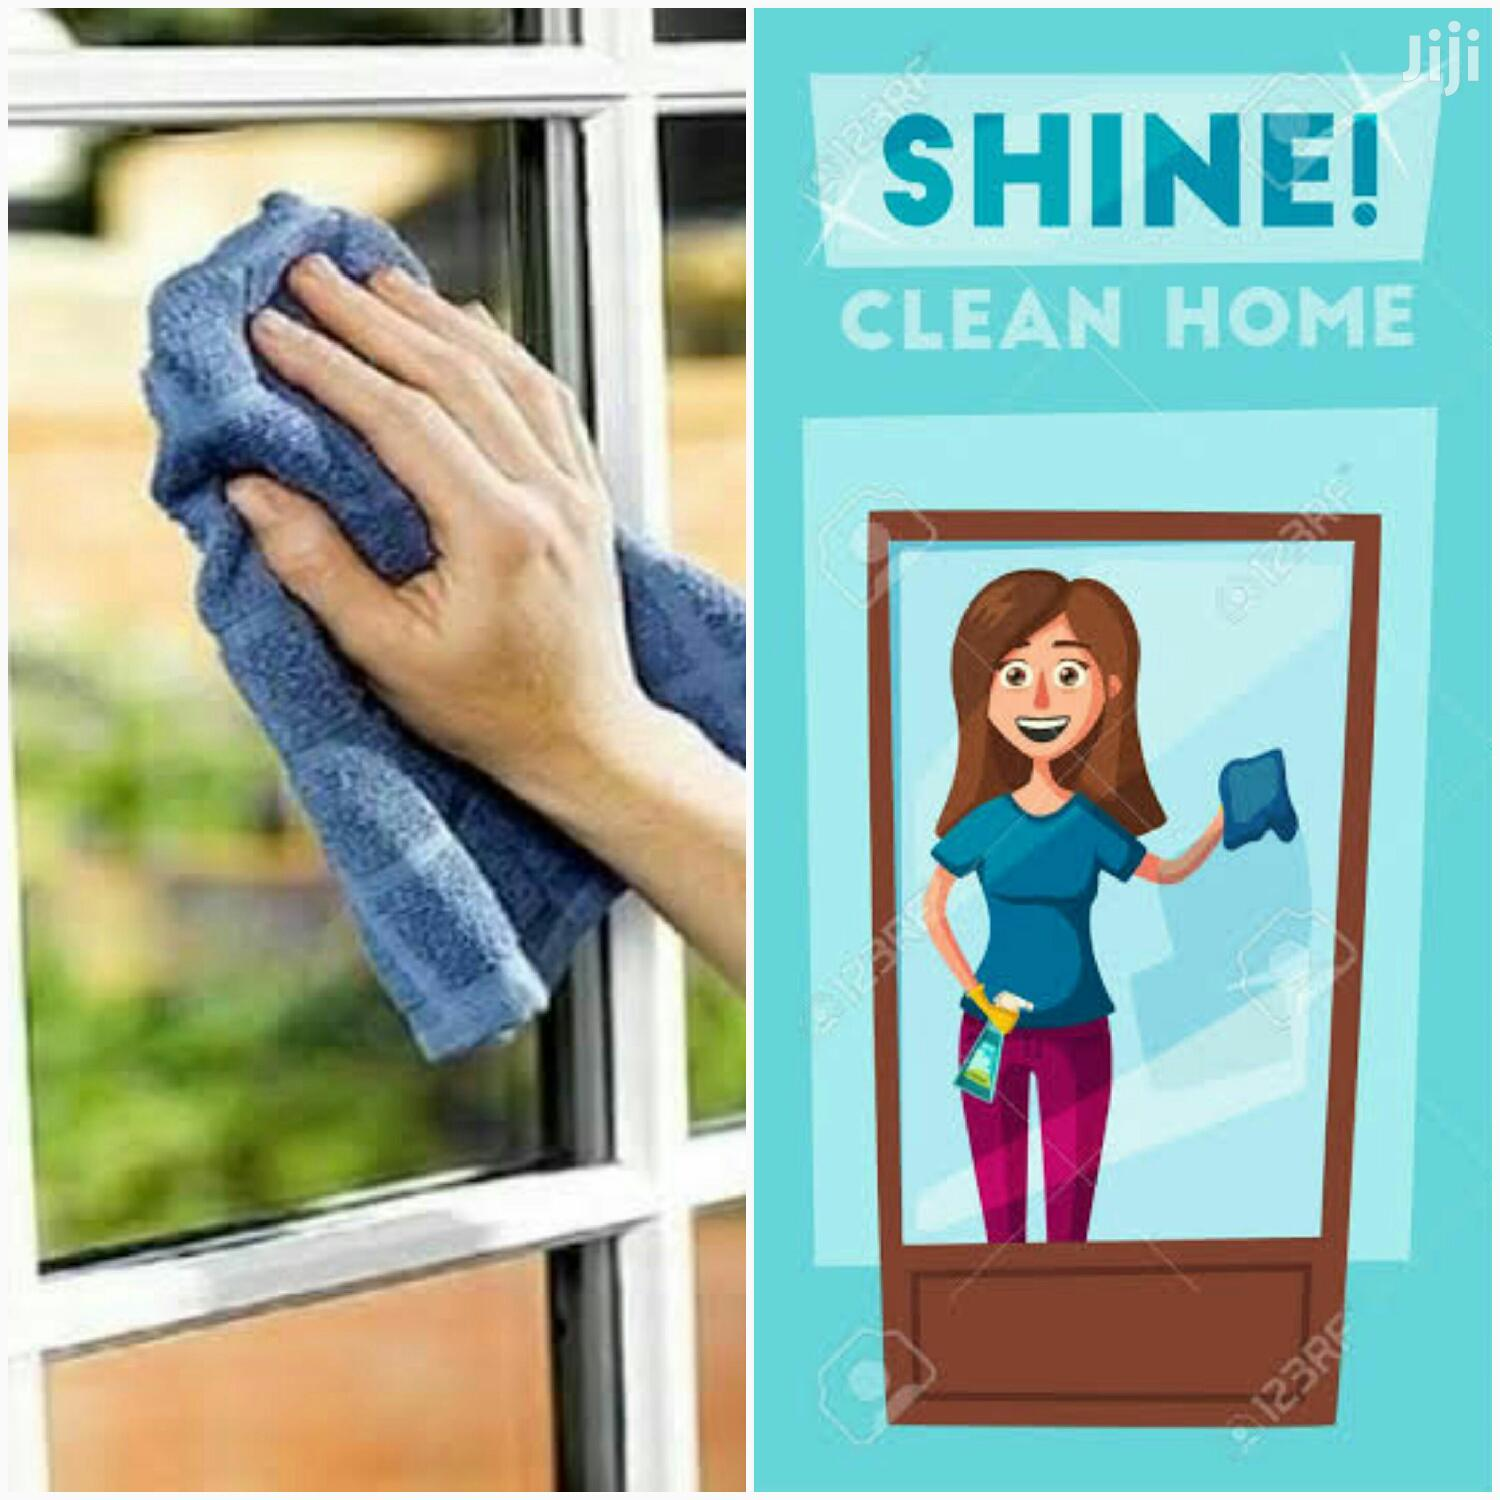 Residential /Window Cleaning Services